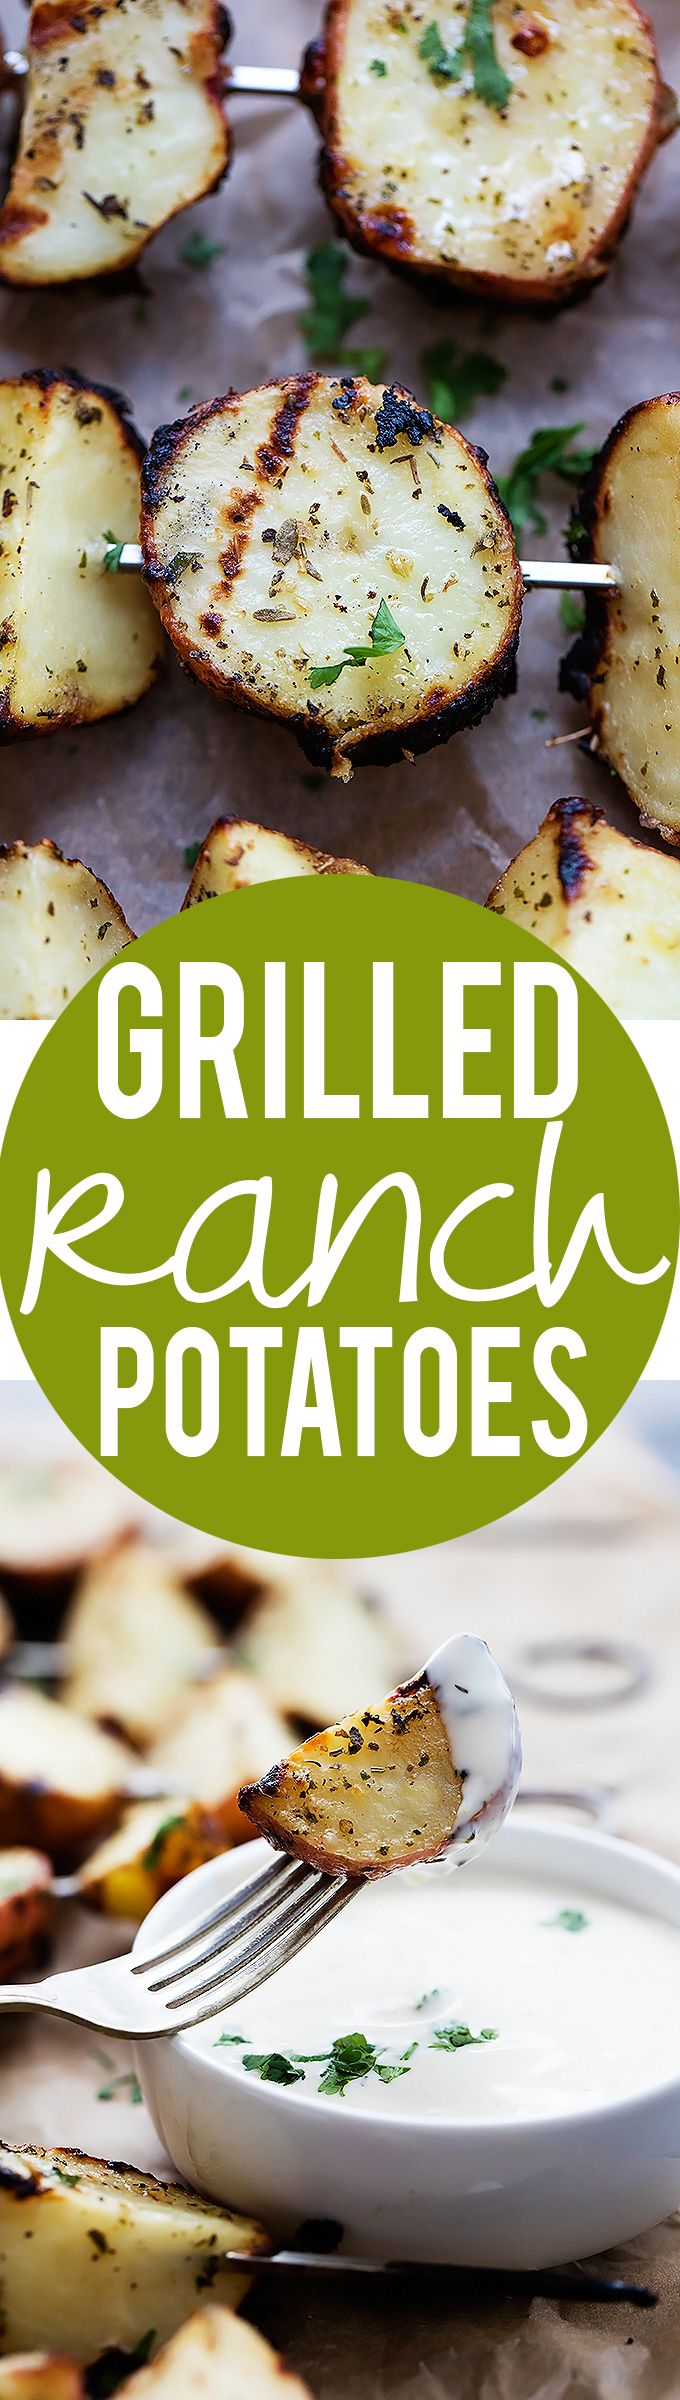 Oh the yumminess: 3-Ingredient Grilled Ranch Potatoes - Creme De La ... http://grillinglove.org/char-broil-classic-4-burner-gas-grill-review/